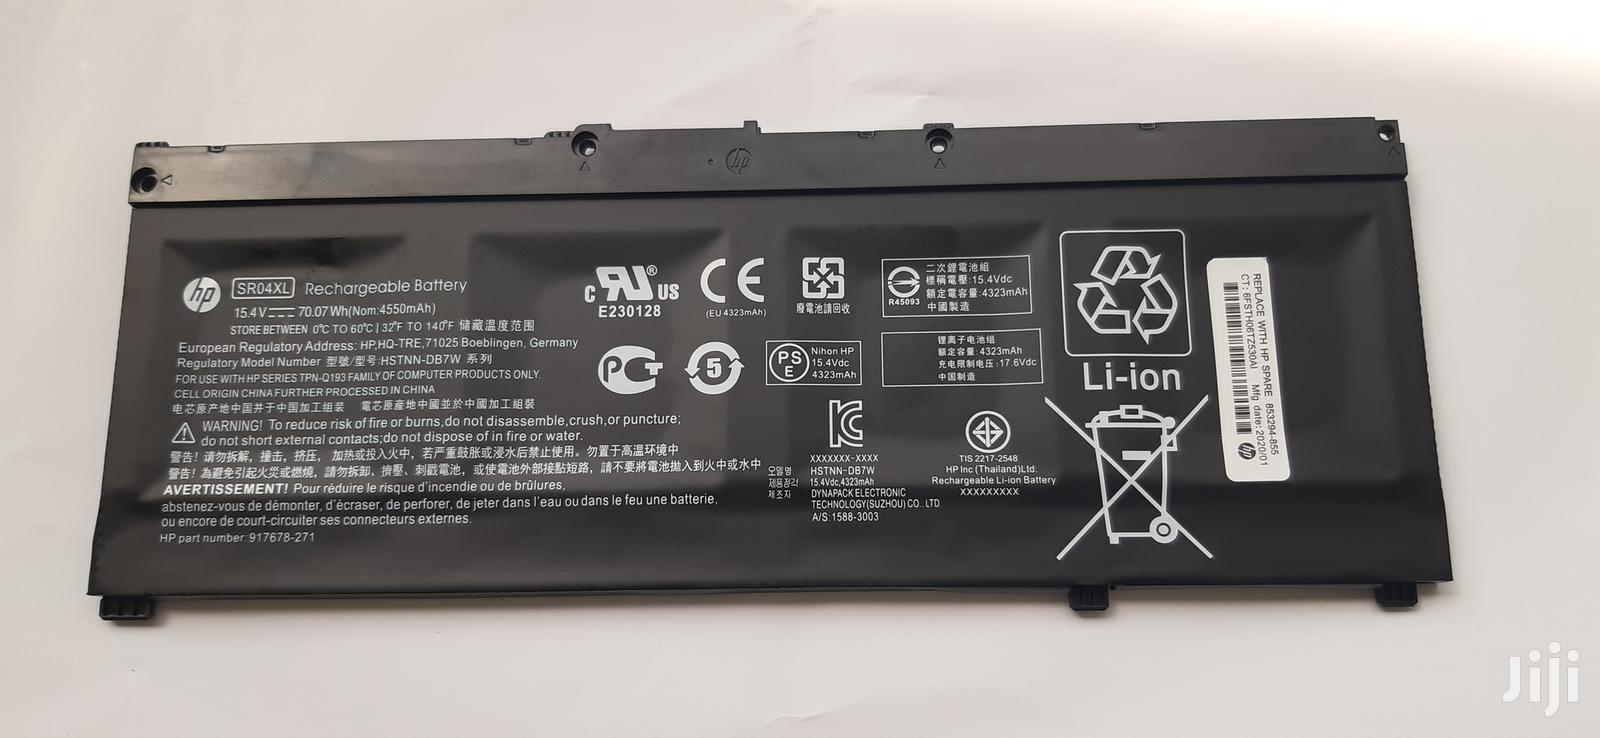 Original HP Battery Sr04xl for HP Omen 15-Ce000 | Computer Accessories  for sale in Accra New Town, Greater Accra, Ghana